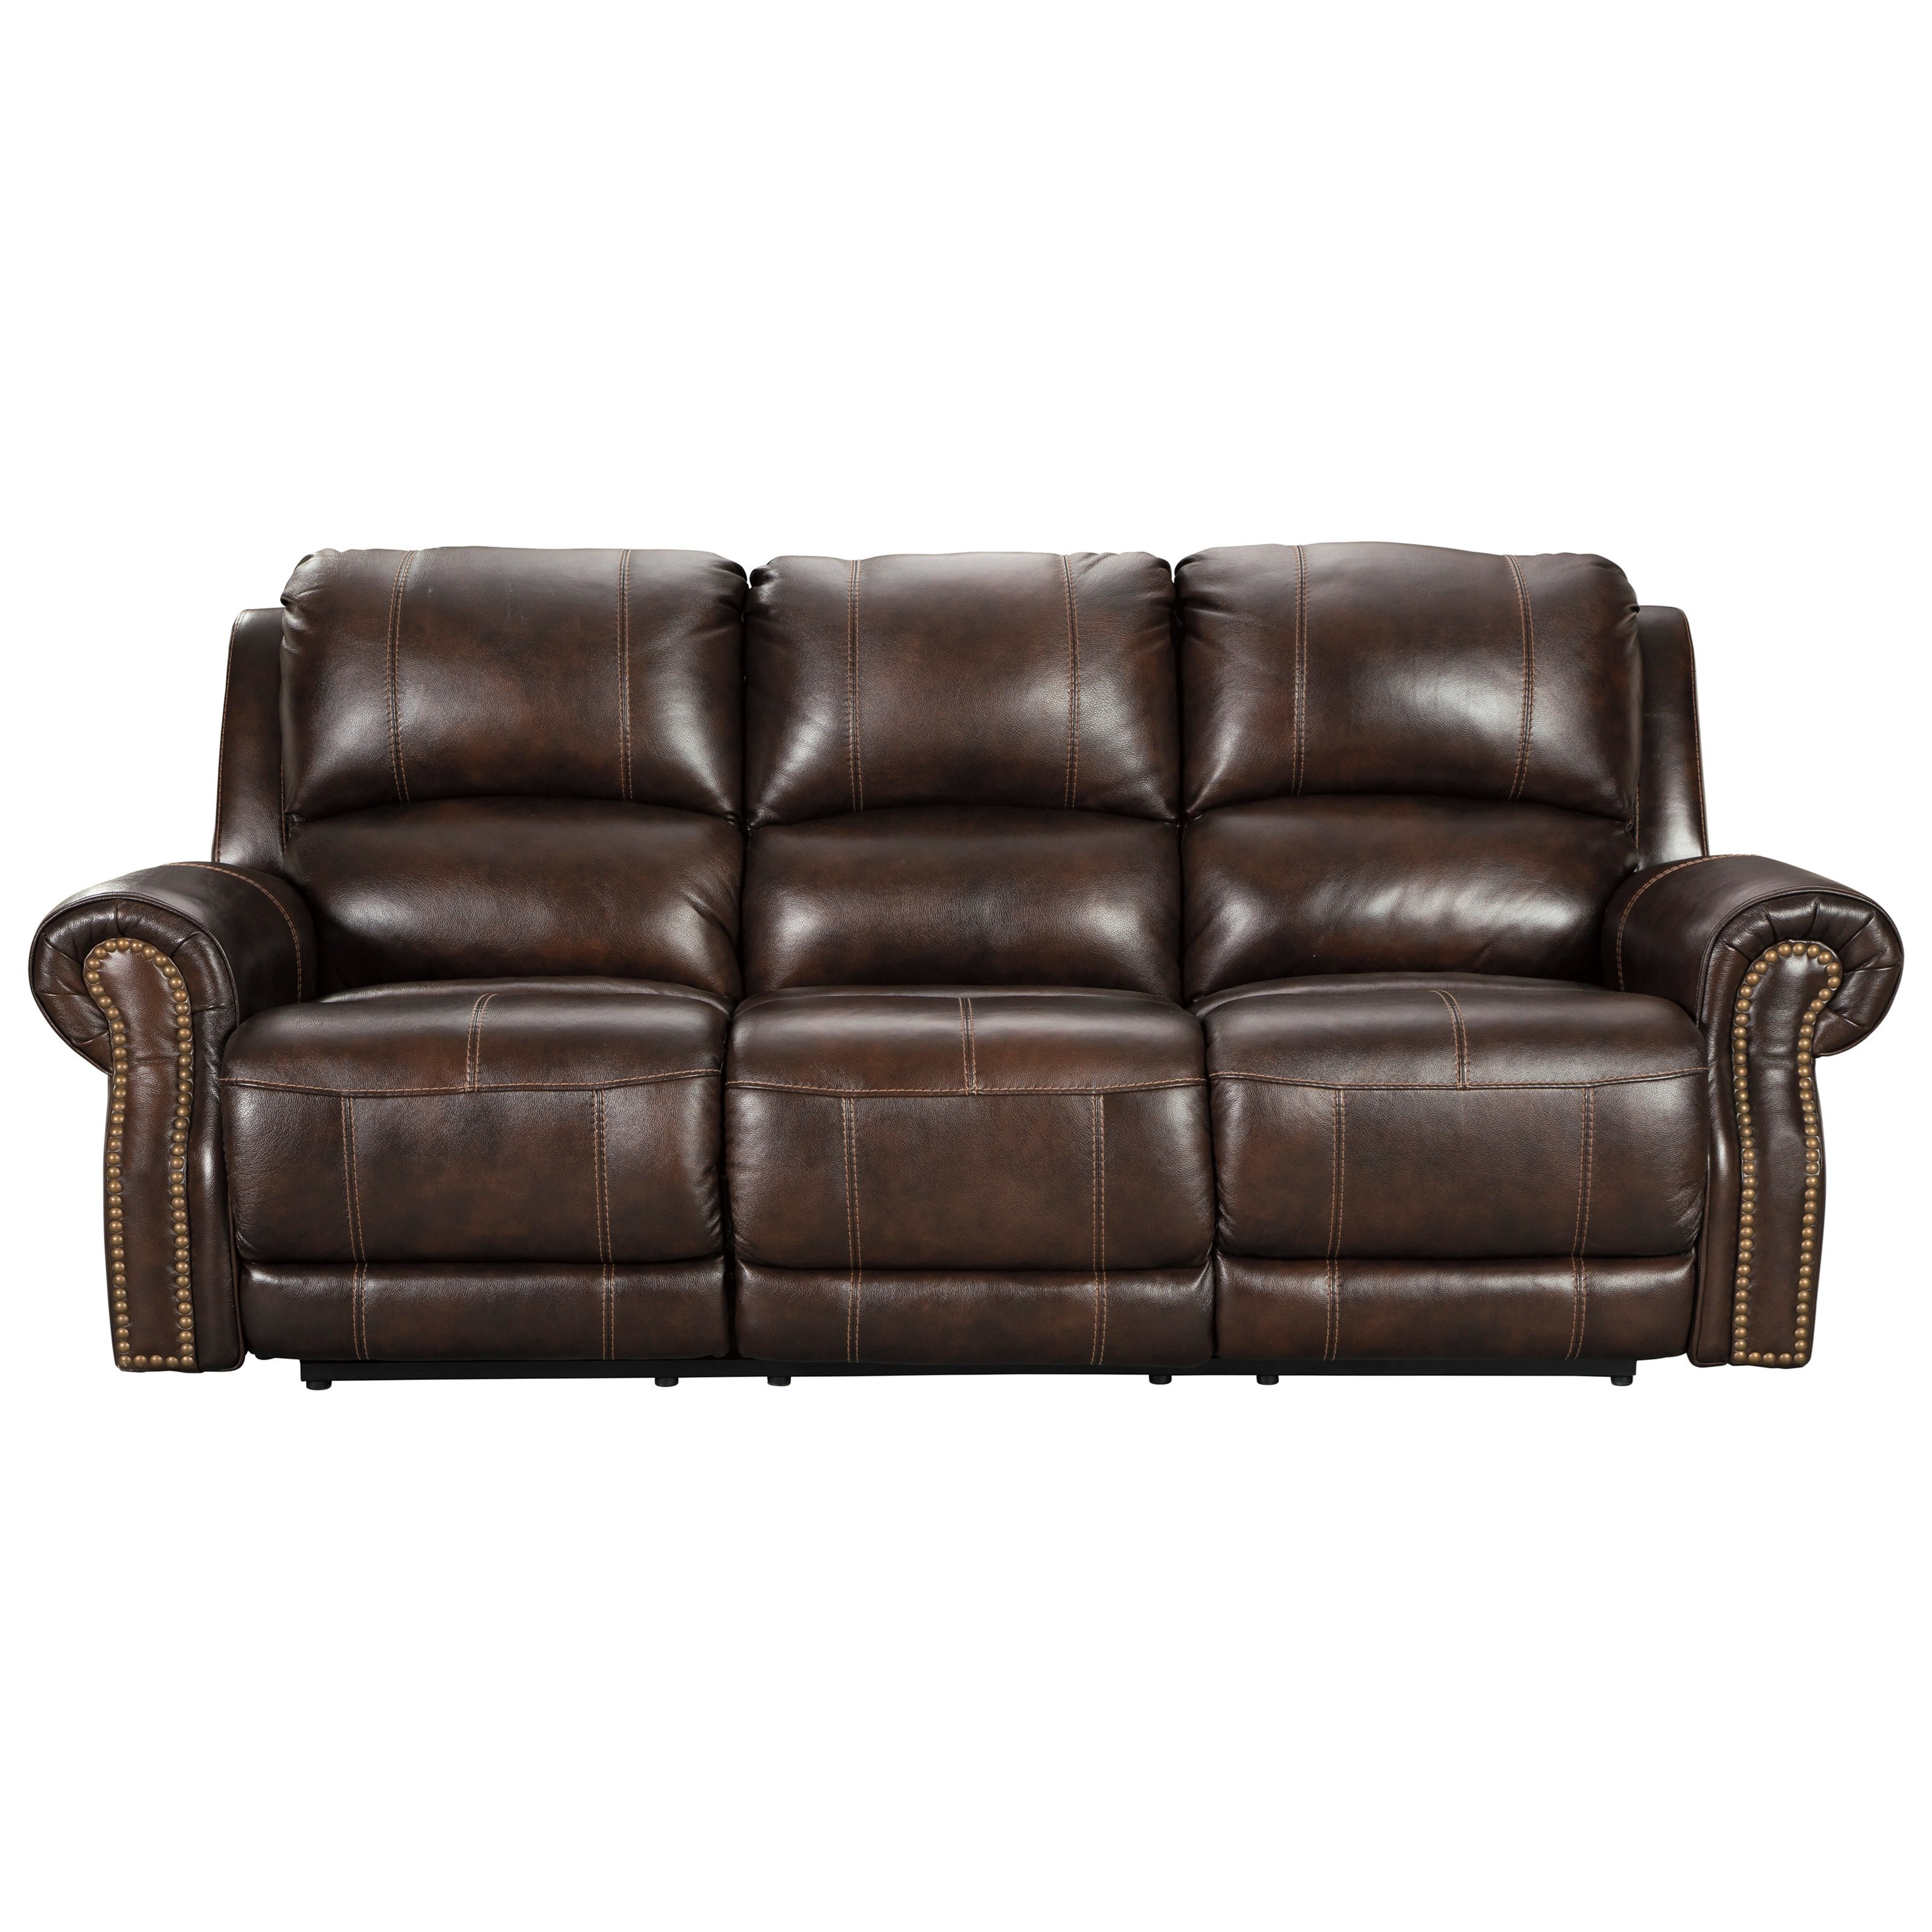 Buncrana Power Reclining Sofa by Signature Design by Ashley at Standard Furniture